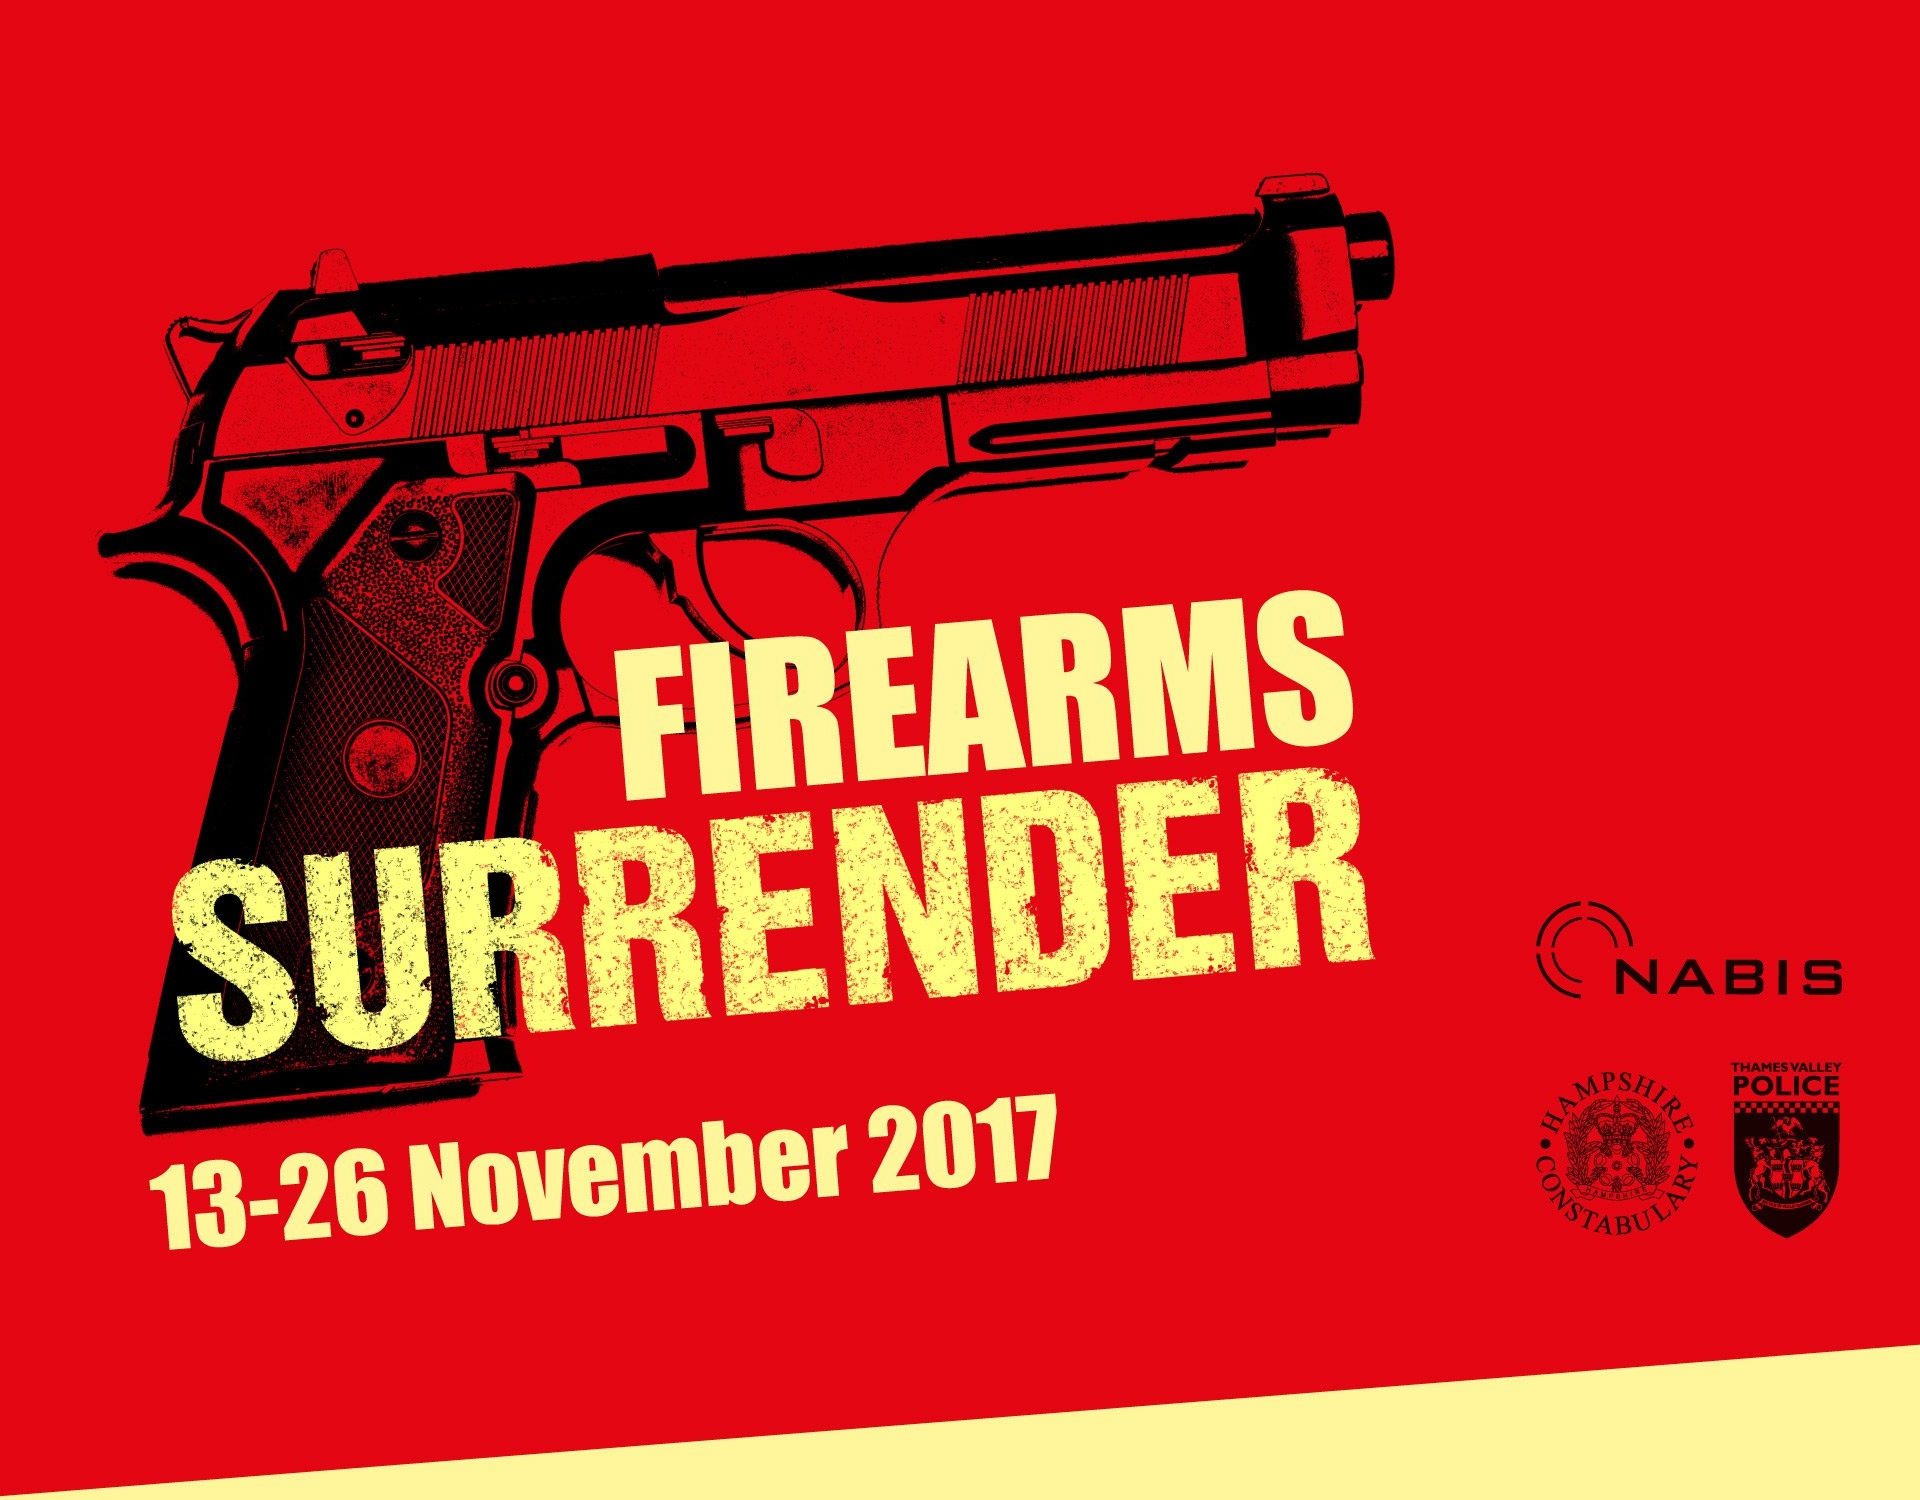 Firearms Surrender